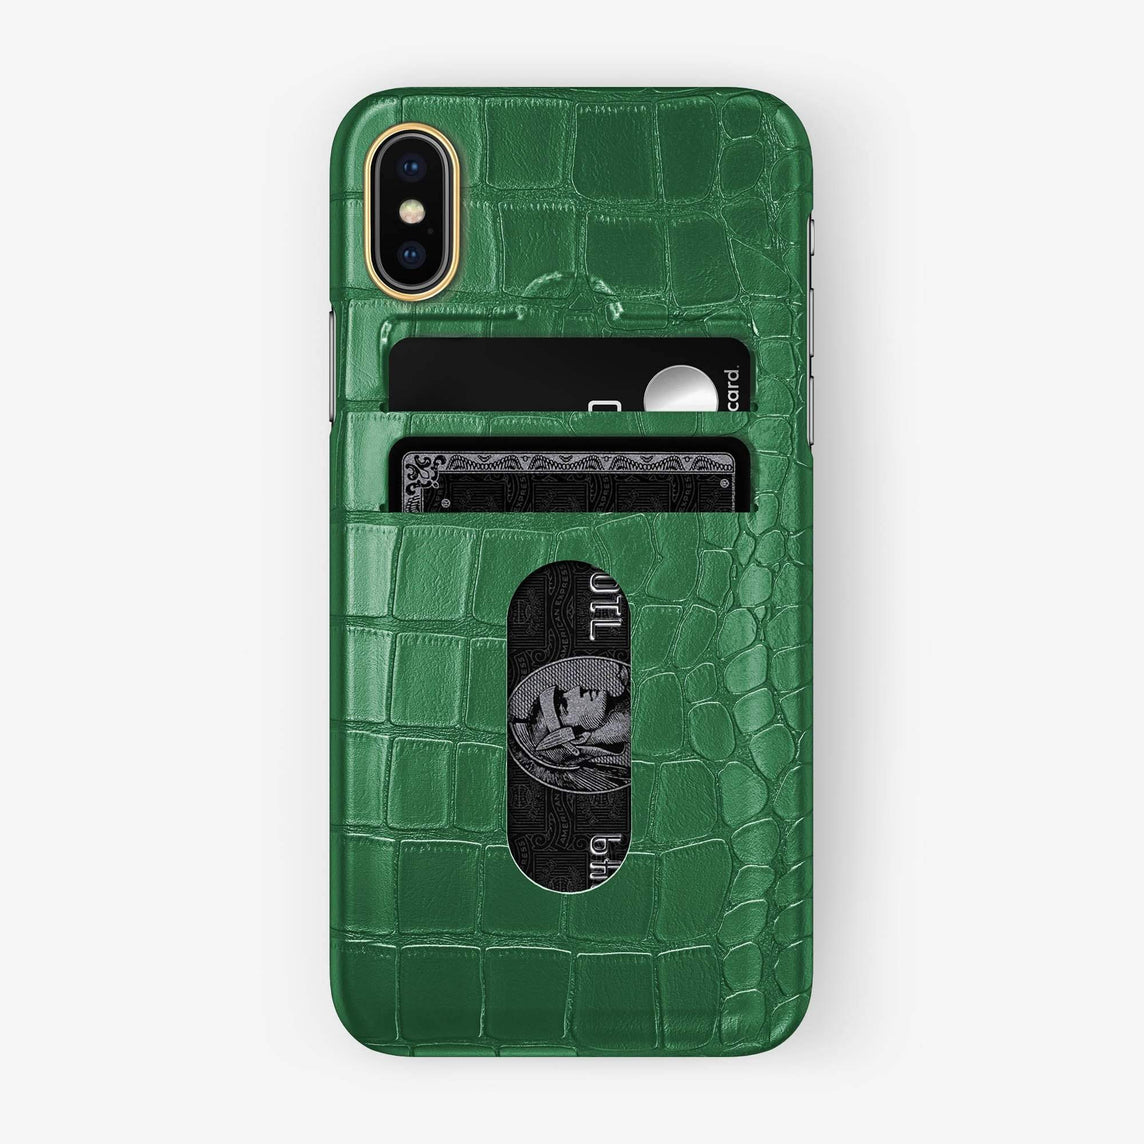 Alligator Card Holder Case iPhone Xs Max | Green - Yellow Gold - Hadoro